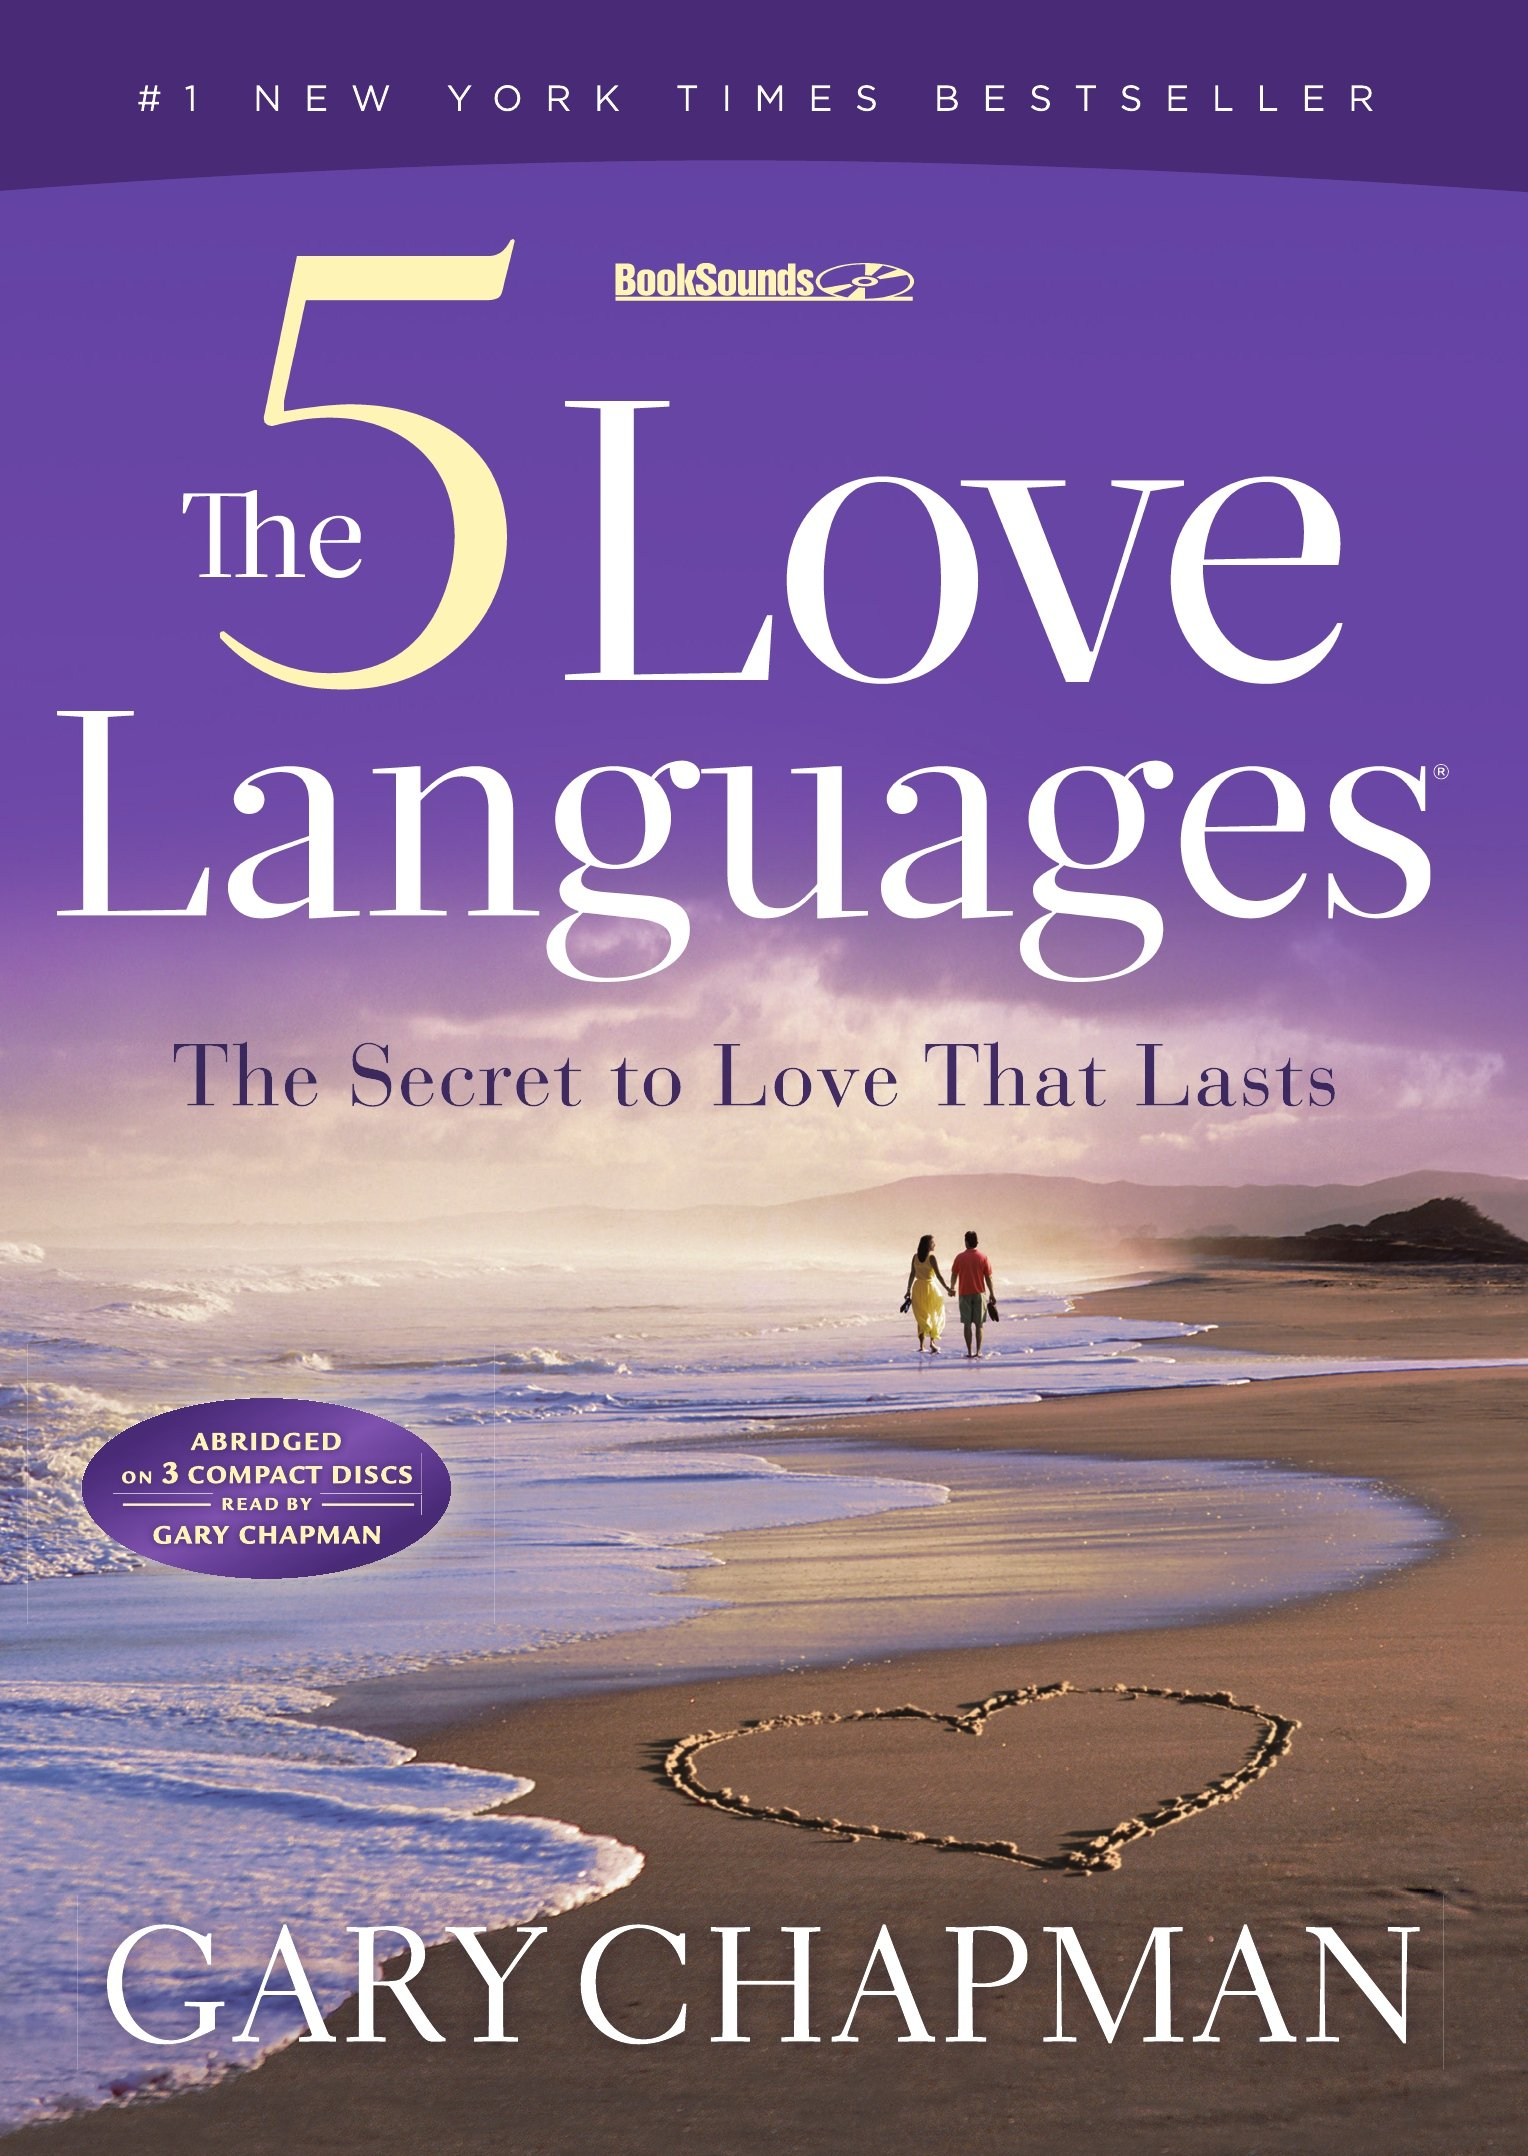 Falling in love is easy. Staying in love—that's the challenge. How can you keep your relationship fresh and growing amid the demands, conflicts, and just plain boredom of everyday life? The 5 Love Languages is as practical as it is insightful., you'll discover the secret that has transformed millions of relationships worldwide. Whether your relationship is flourishing or failing, Dr. Gary Chapman's proven approach to showing and receiving love will help you experience deeper and richer levels of intimacy with your partner—starting today